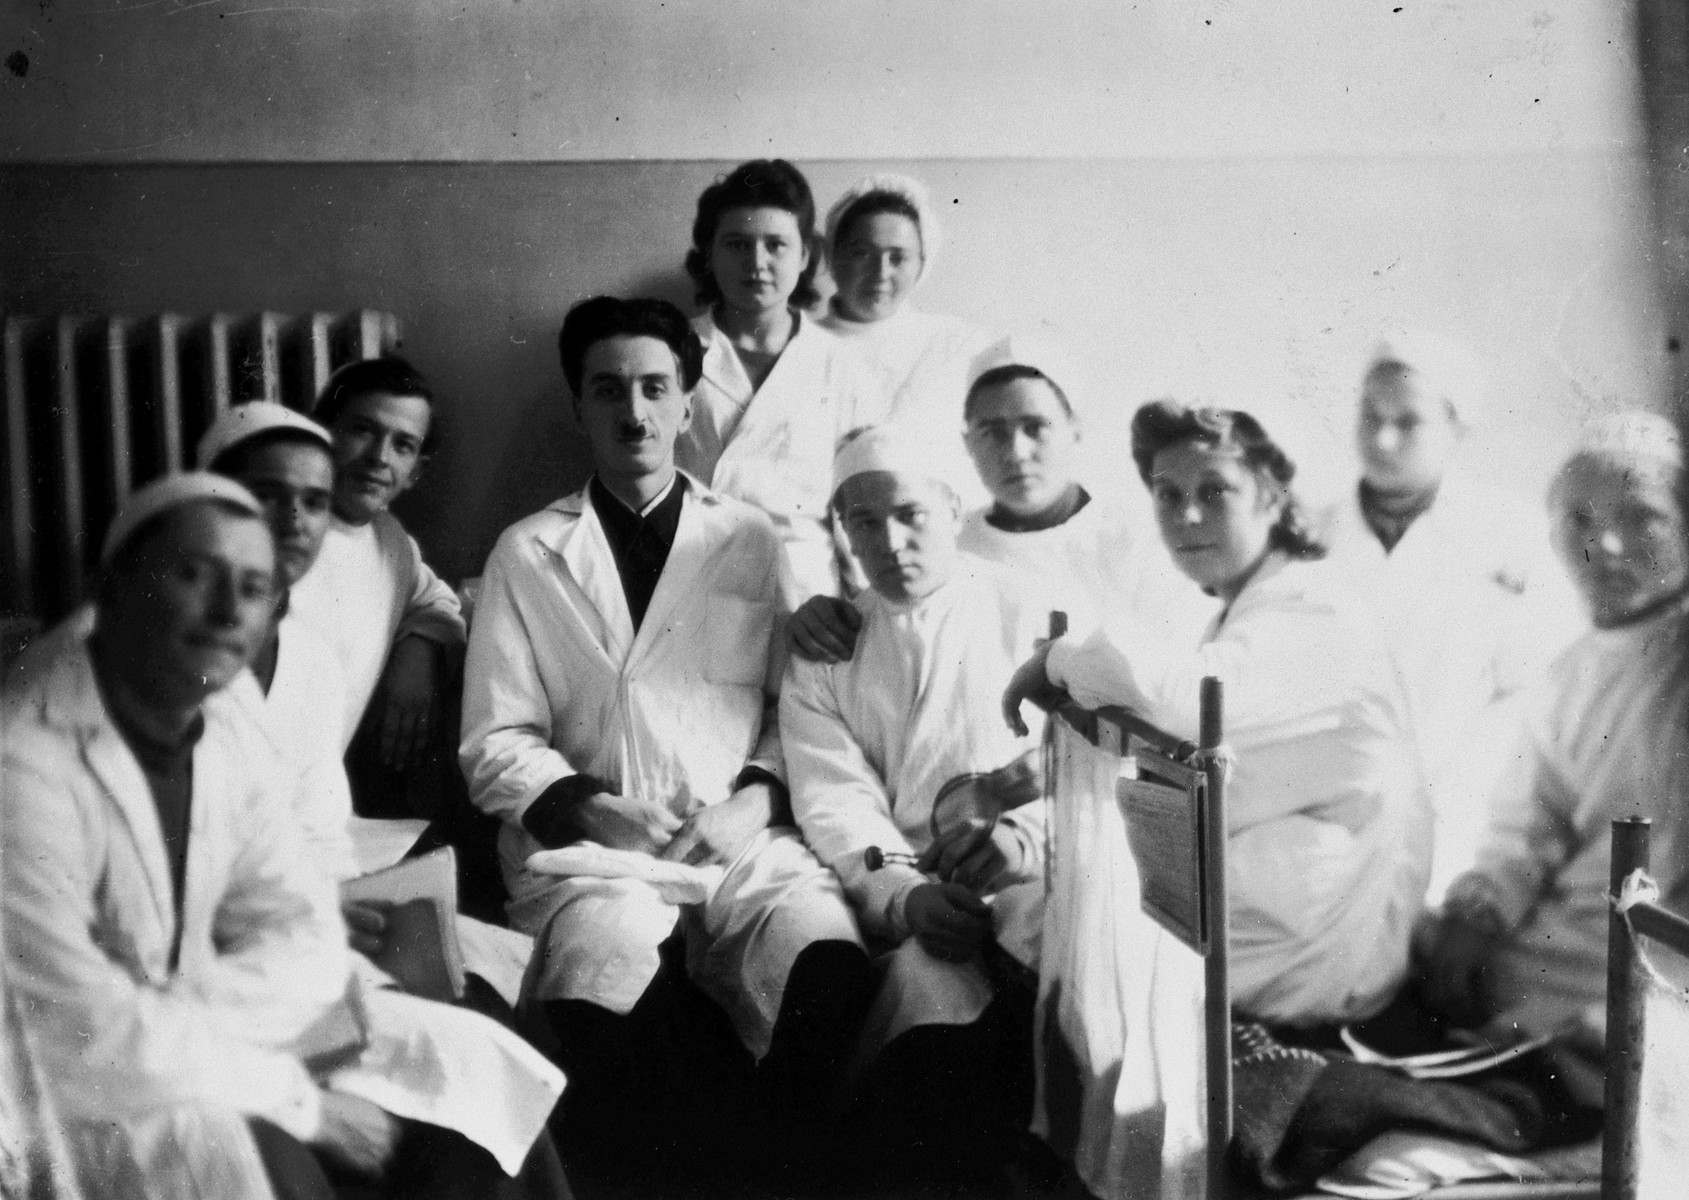 Group portrait of medical students from Kiev University in its temporary location in the Ural Mountains.  Yulian Rafes is in the center (fourth from the left).